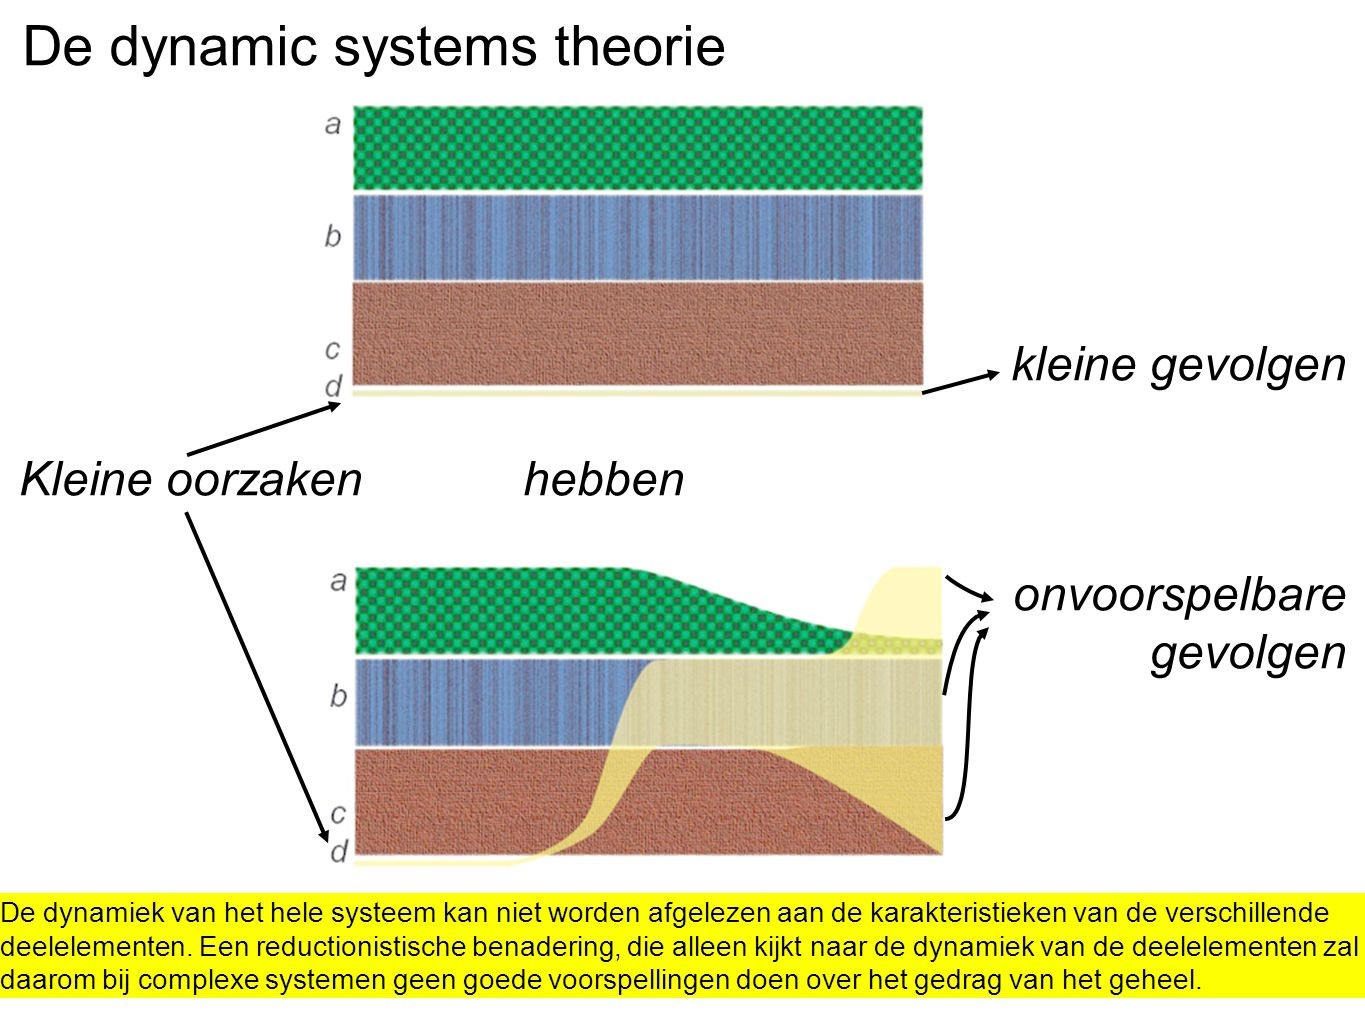 De dynamic systems theorie